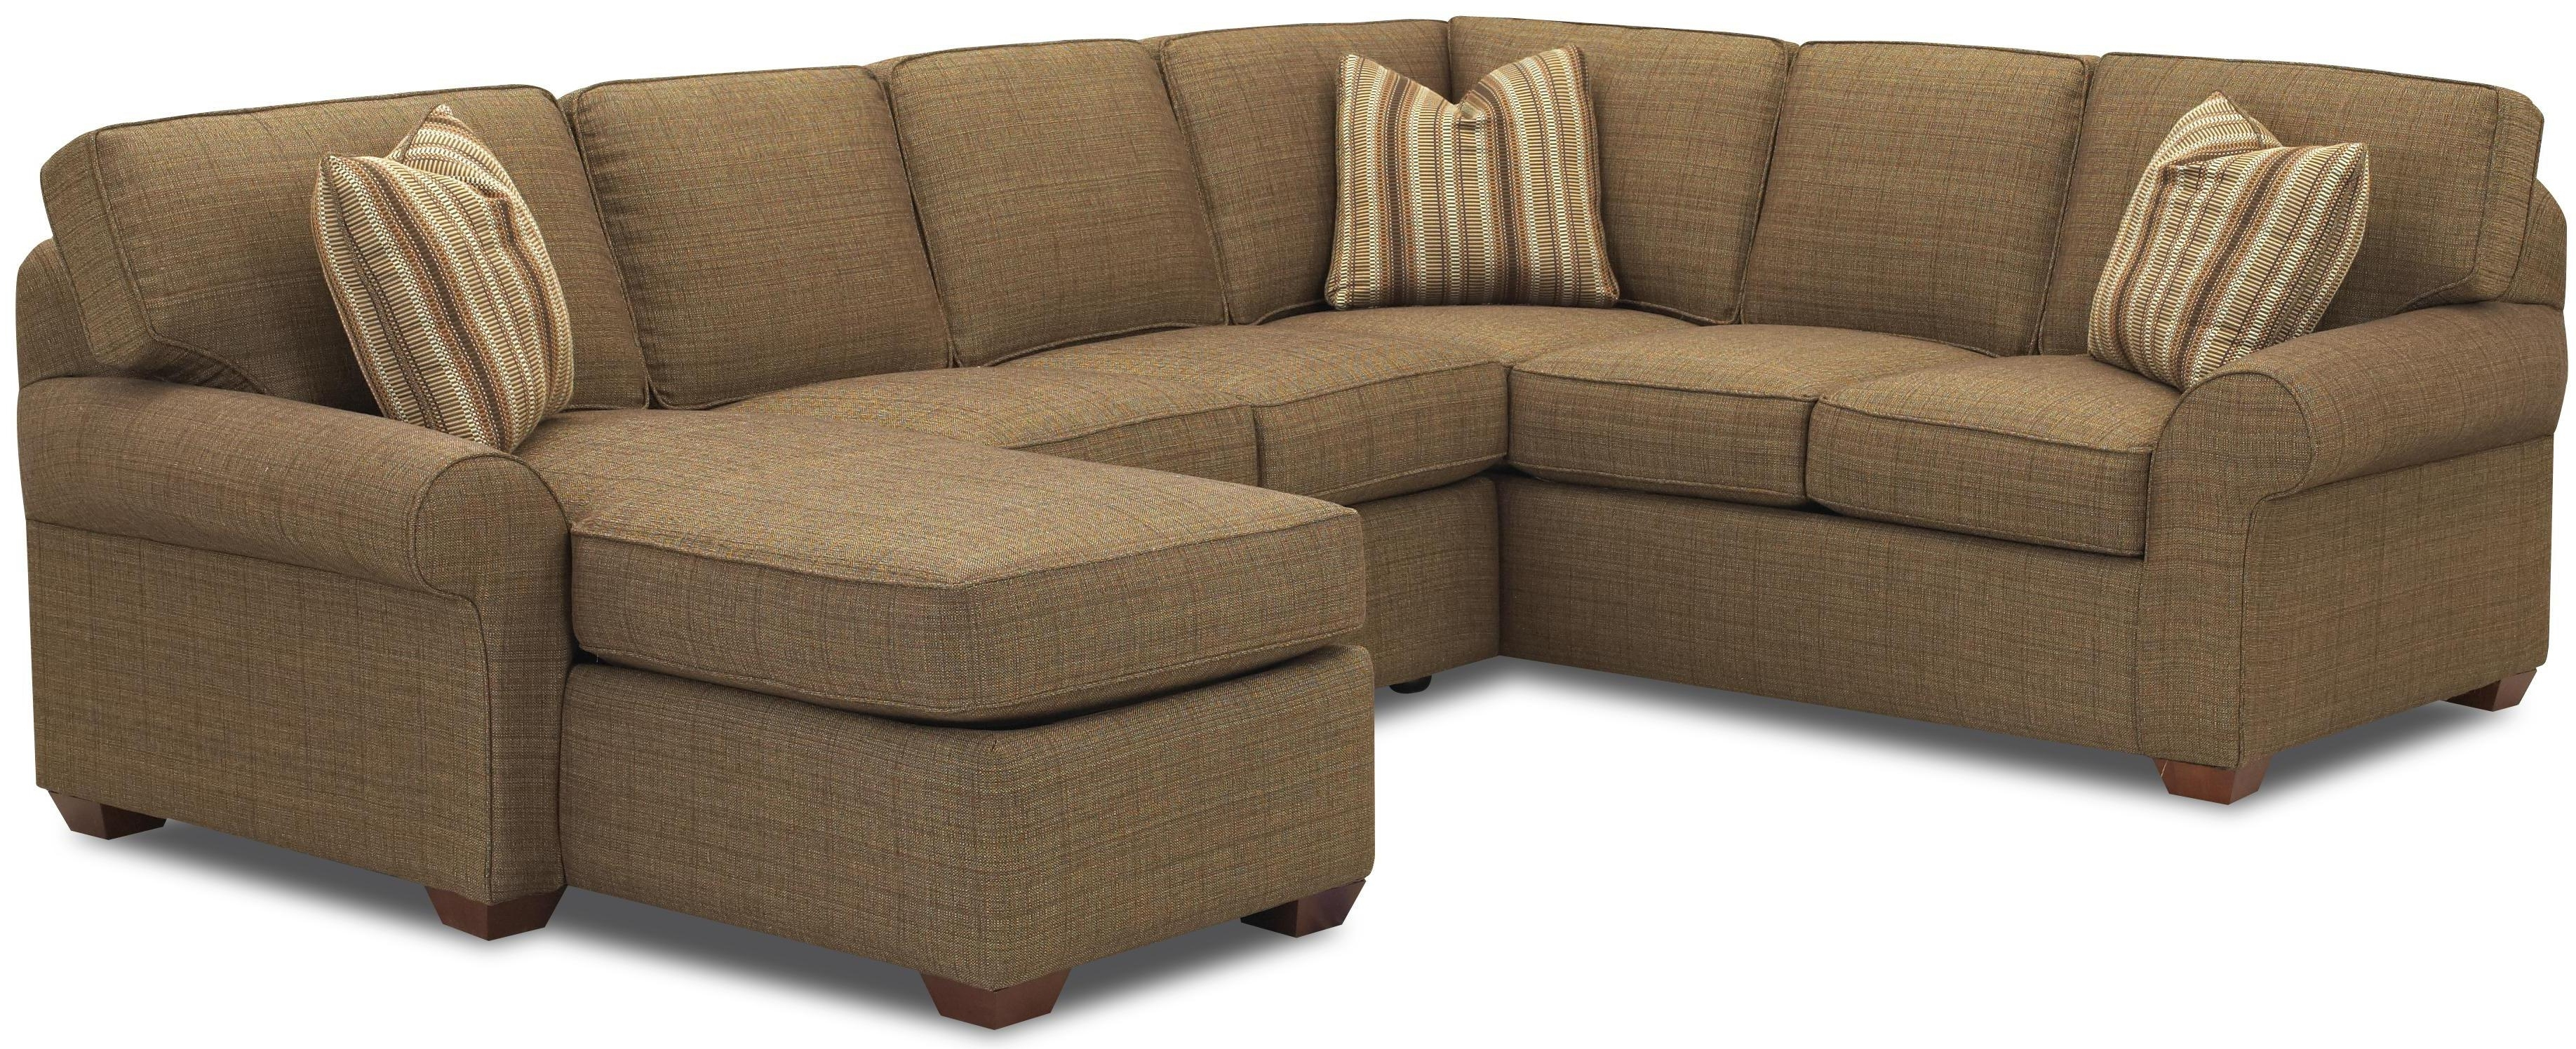 Most Recently Released Fancy Sofa Chaise Lounge 48 For Your Modern Sofa Inspiration With Intended For Sofa Chaise Lounges (View 4 of 15)